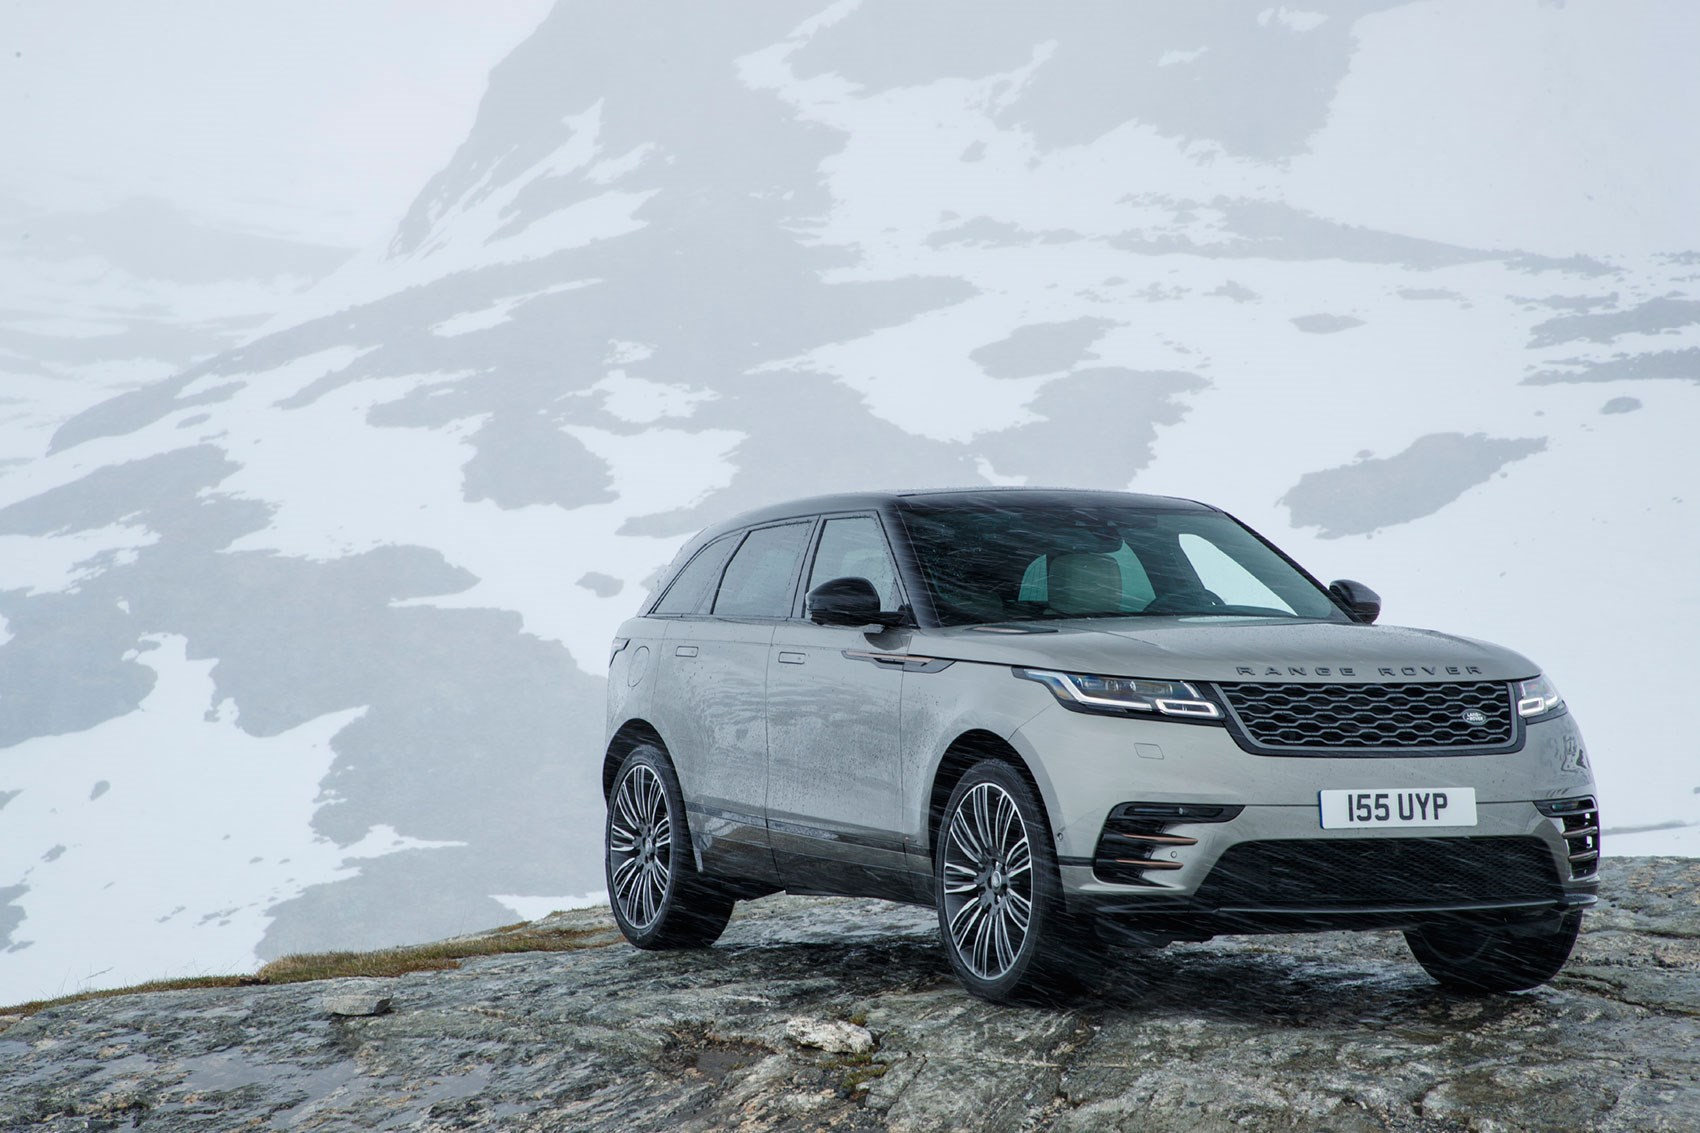 range rover velar first edition p380 2018 review by car magazine. Black Bedroom Furniture Sets. Home Design Ideas